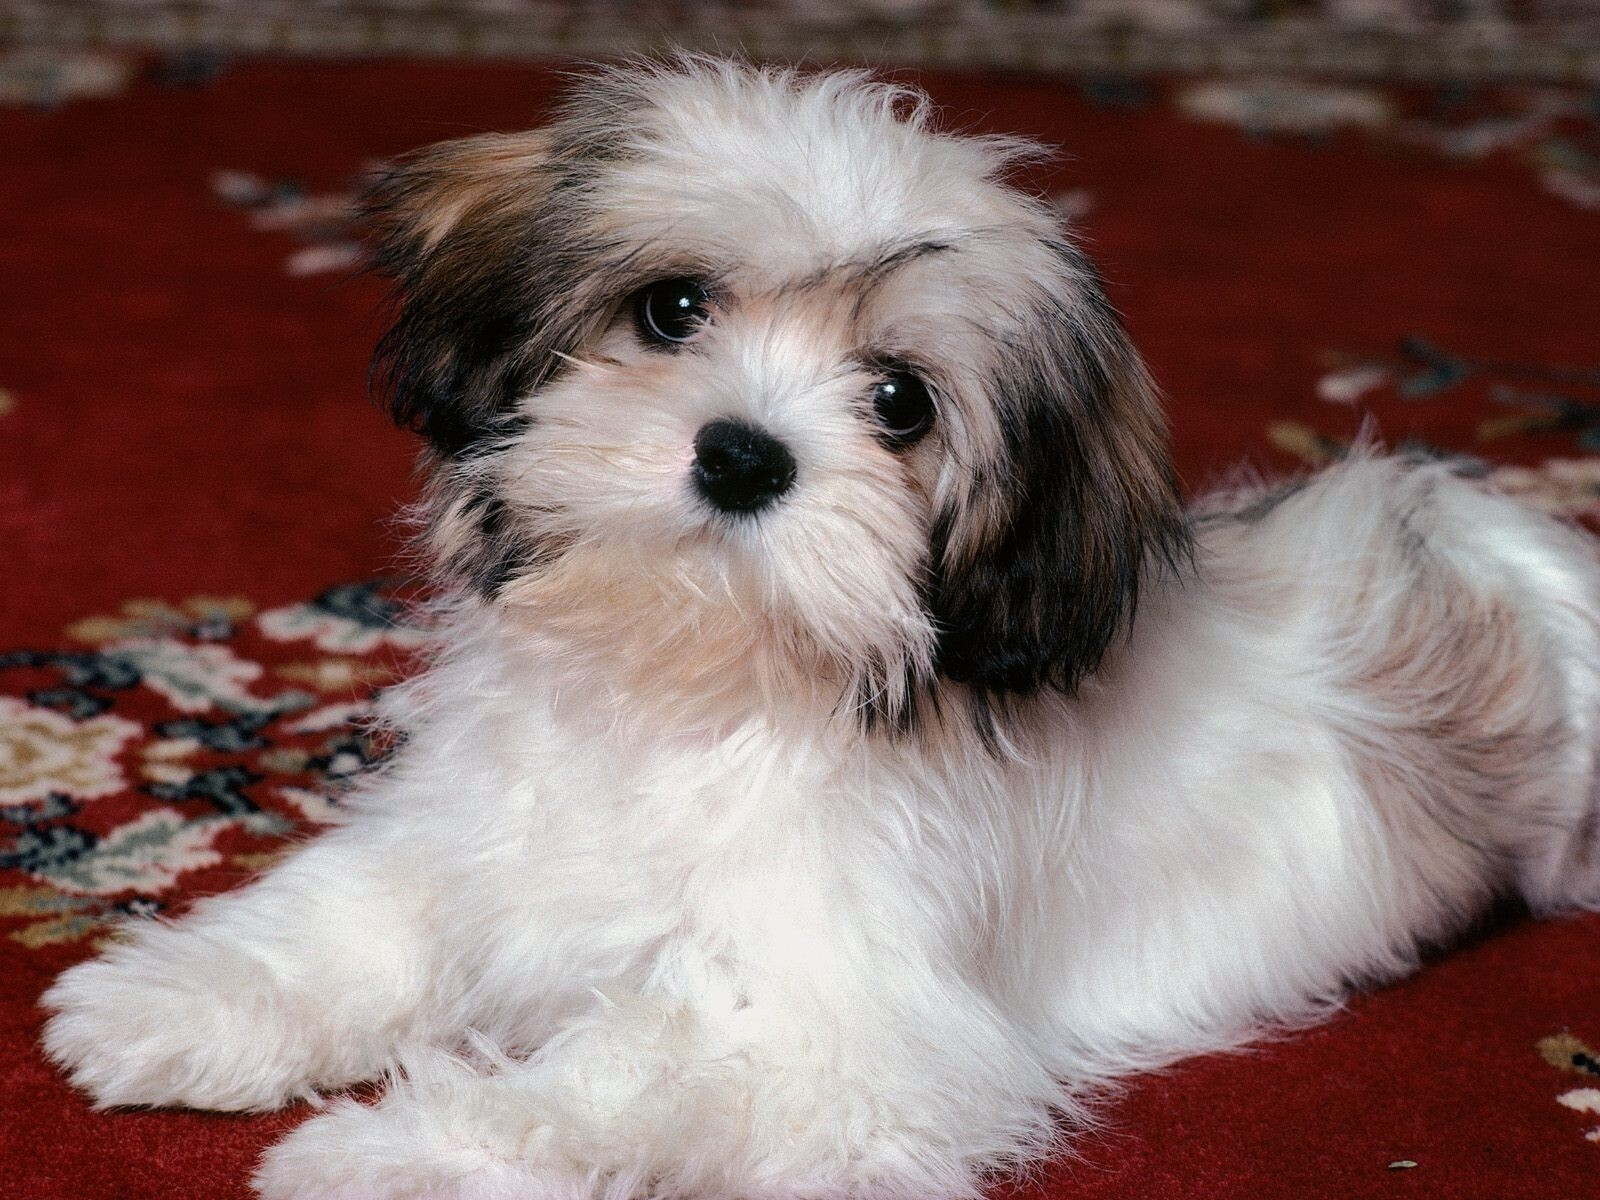 White Hairy Doggy | HD Wallpapers